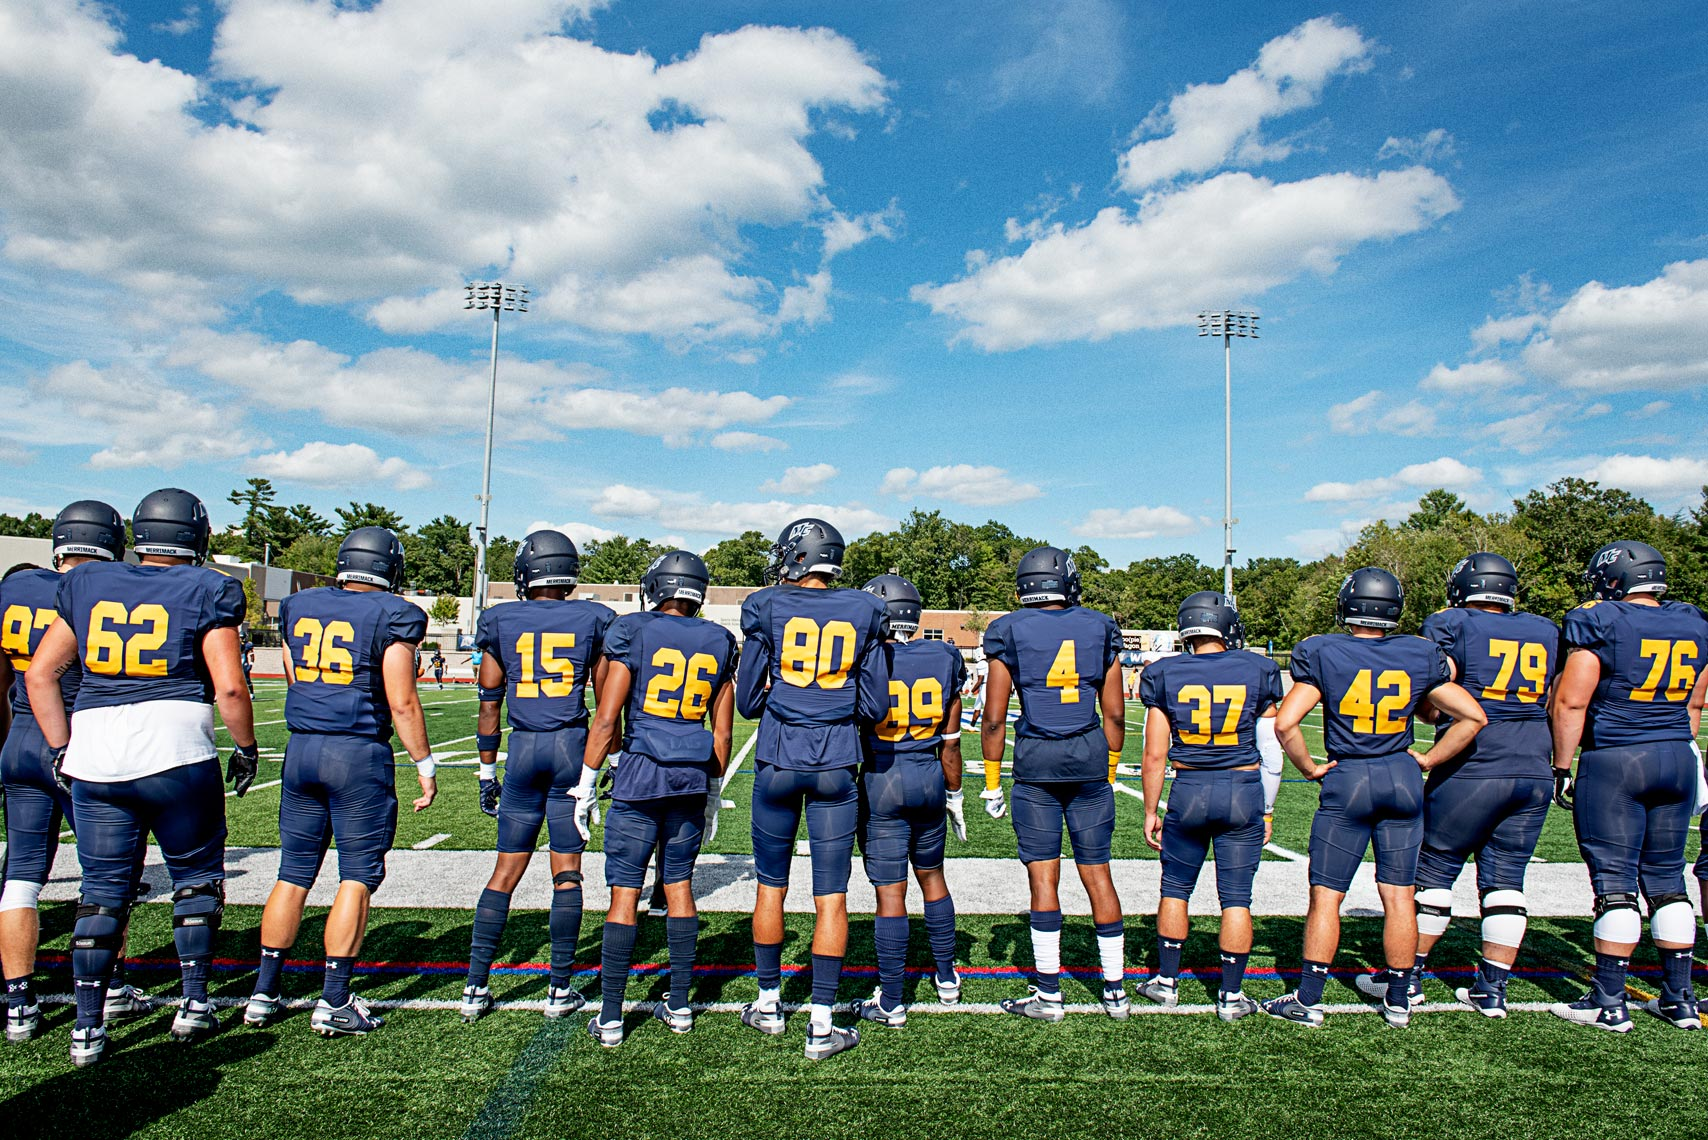 on the sidelines at at college football game Merrimack College Massachusetts